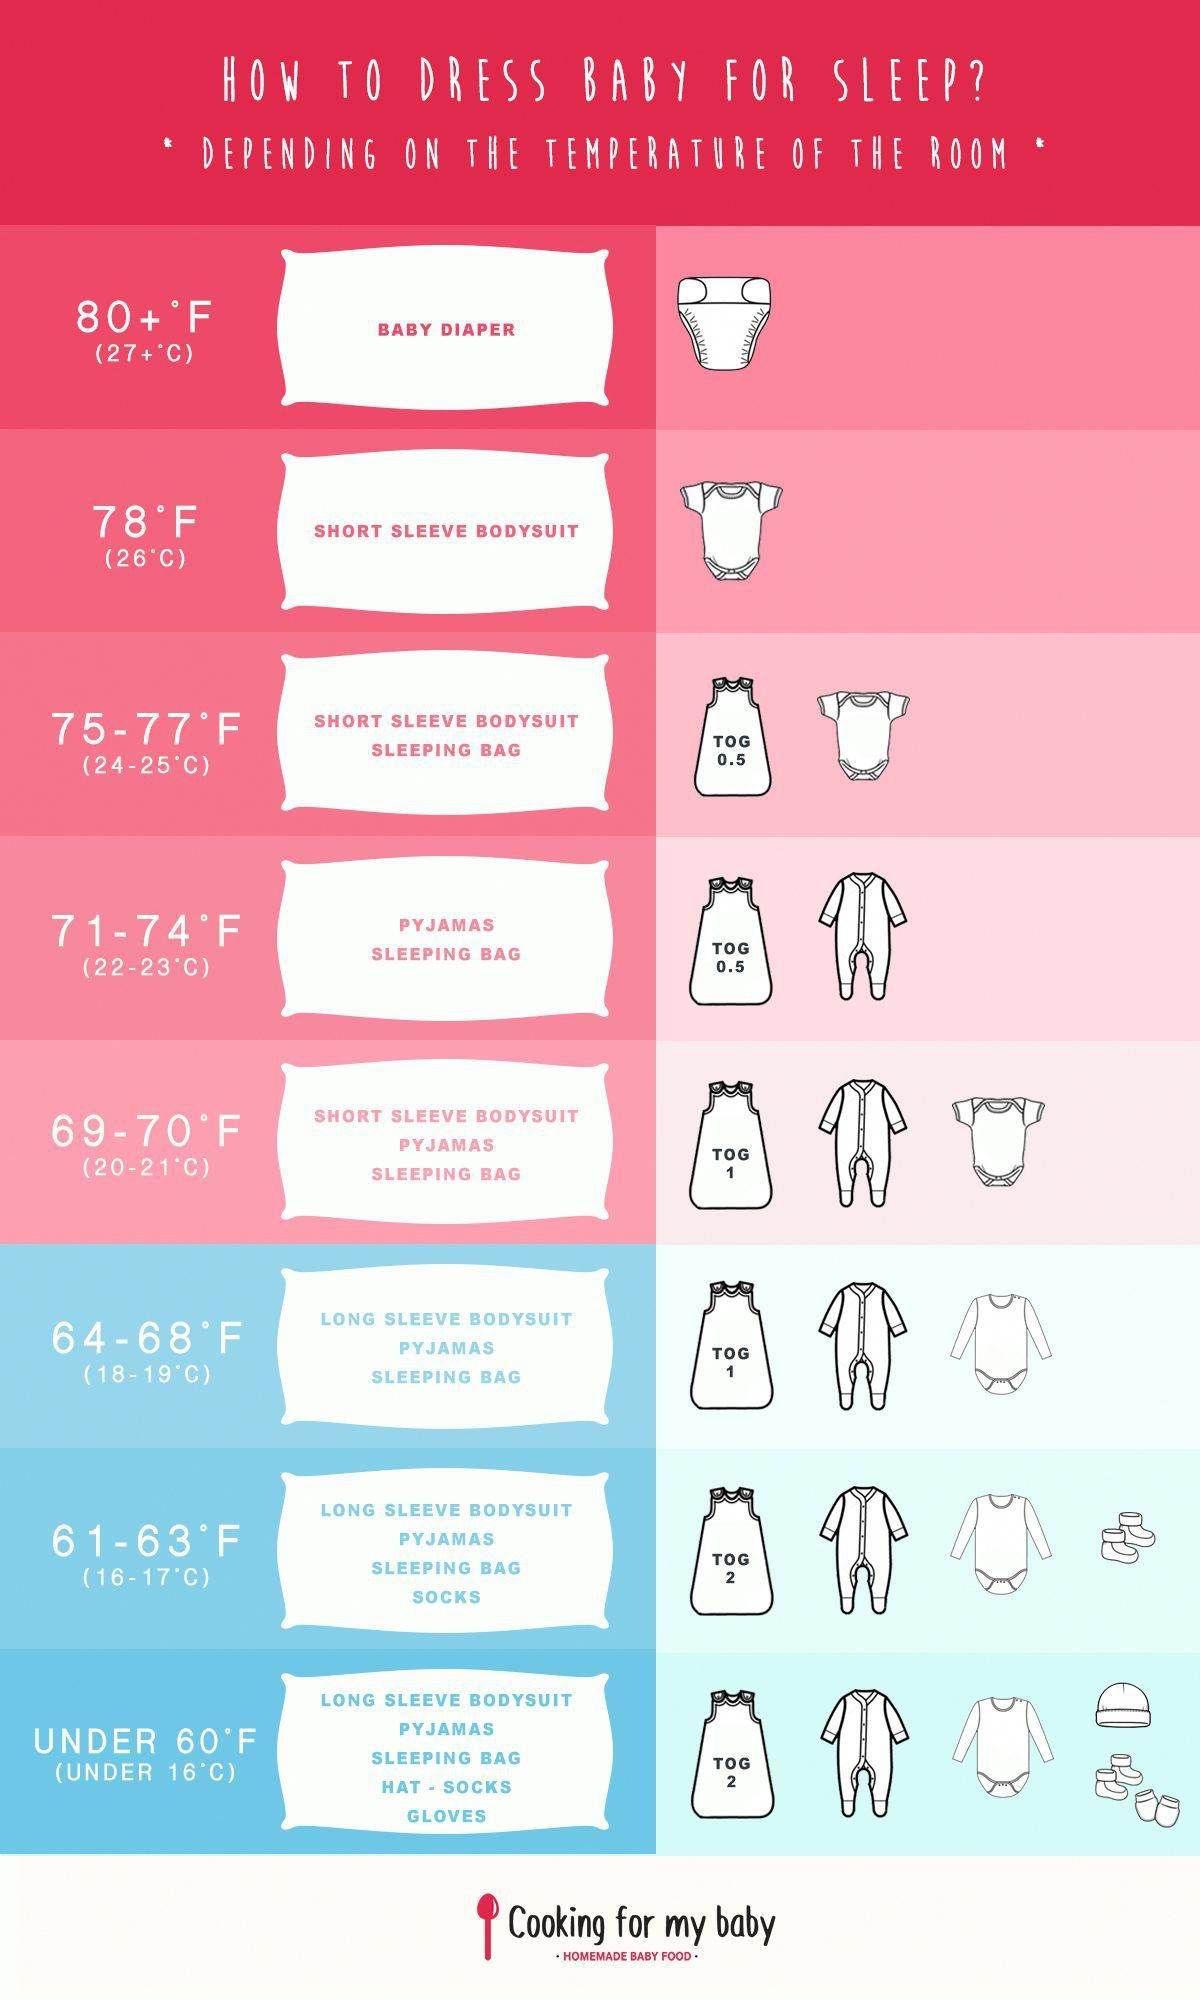 Pin By Rachel Campbell On Baby Thomas In 2020 Baby Dress New Baby Products Baby Sleep